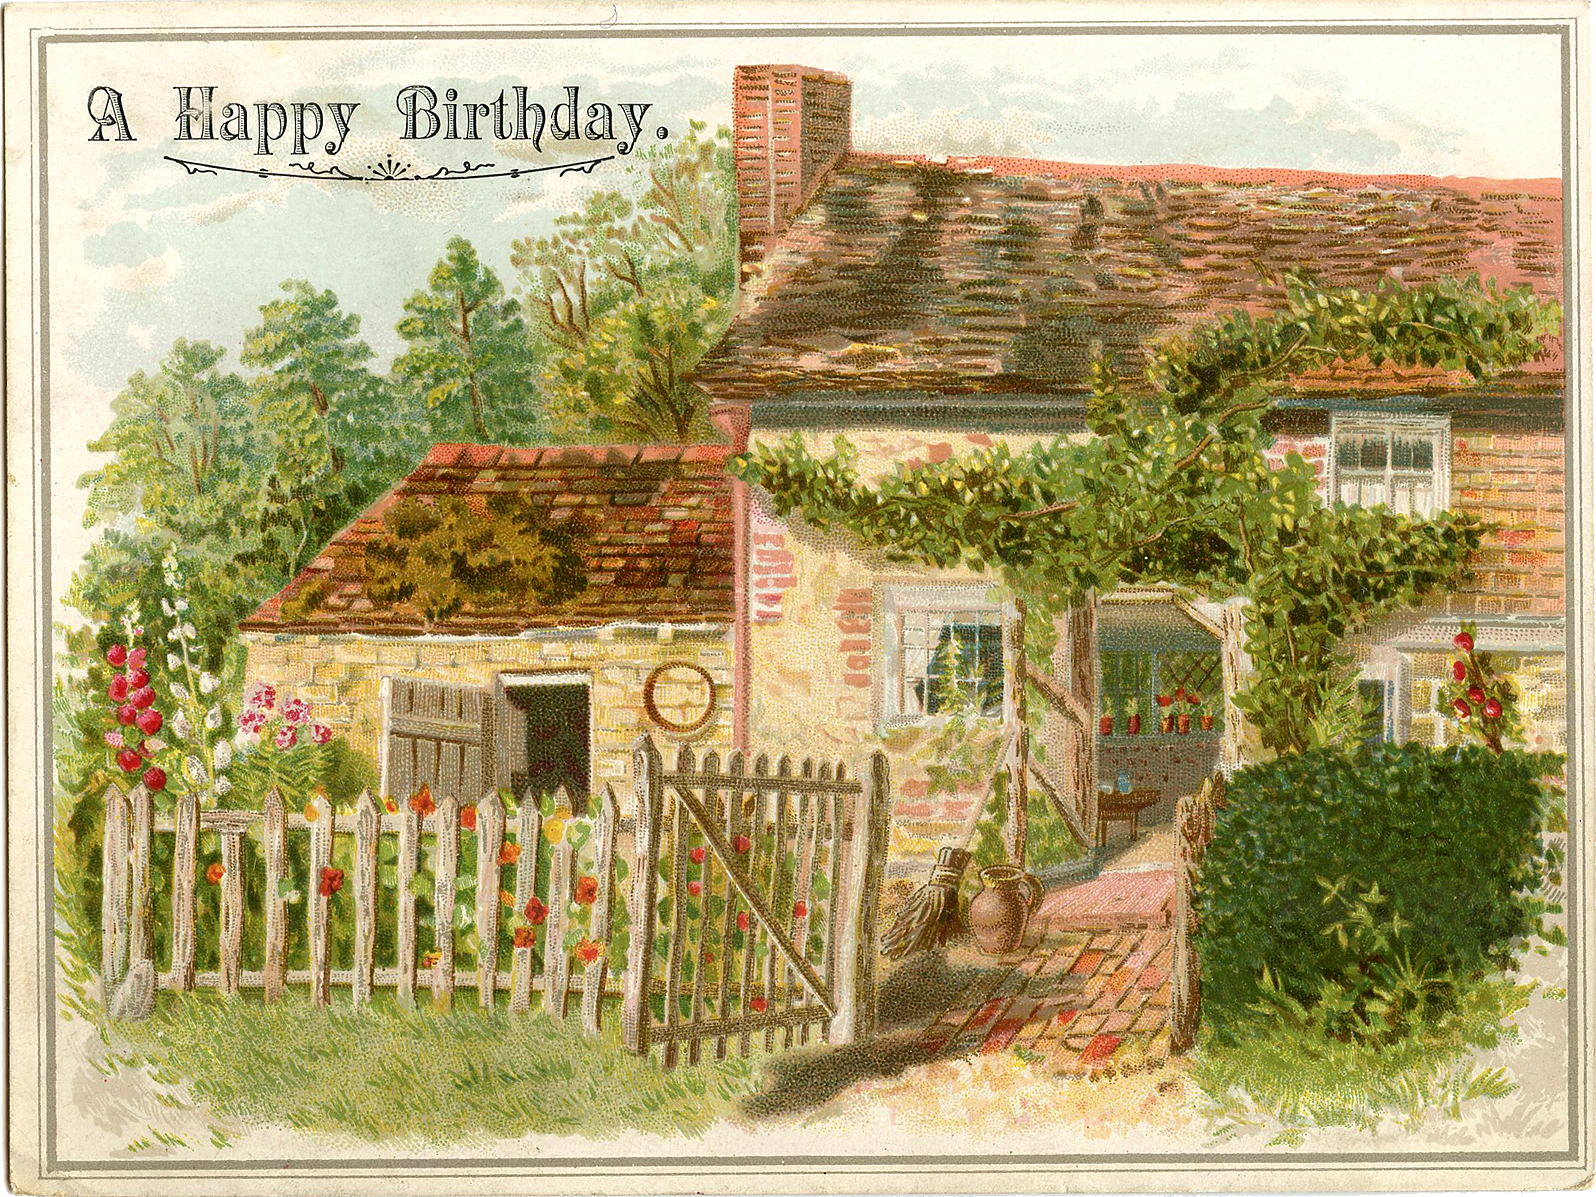 Vintage Birthday Image Charming Cottage The Graphics Fairy – Vintage Birthday Cards for Men